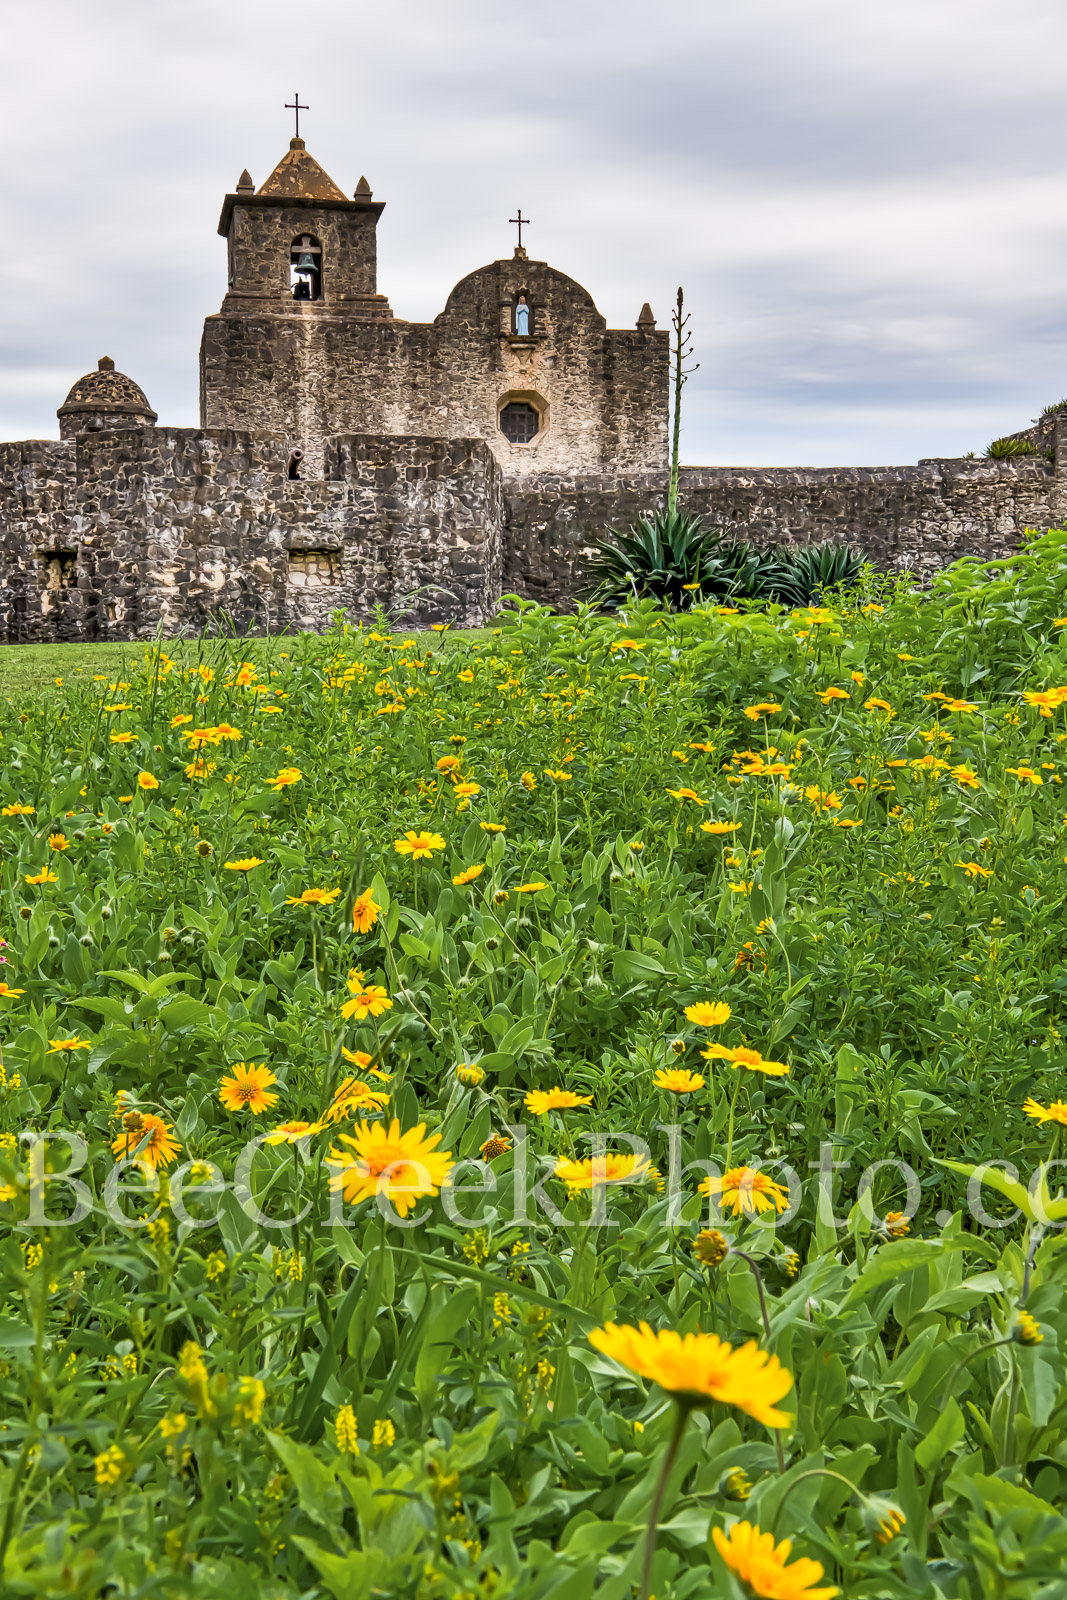 Presidio La Bahi, Presidio Goliad, wildflowers, indian paintbrush, daisy, historic, catholic church, mission, missions, spanish, fort, vertical, tall, texas revolution, battle of Goliad, yellow daisy , photo